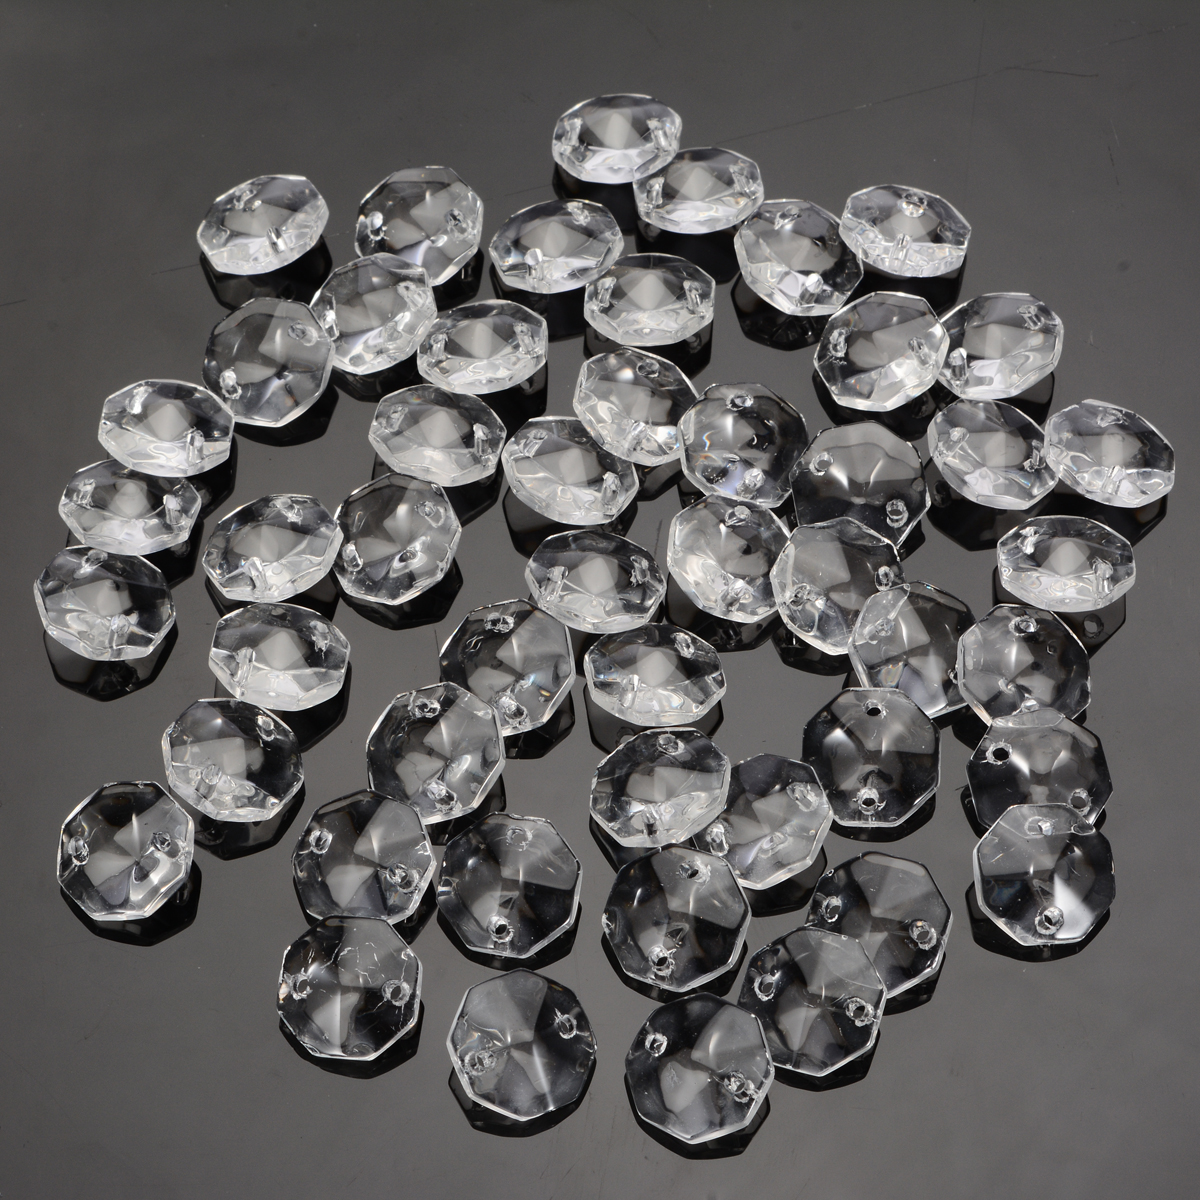 50pcs 14mm 4 Holes Glass Square Crystal Beads Prisms Chandelier Lamp Chain Parts